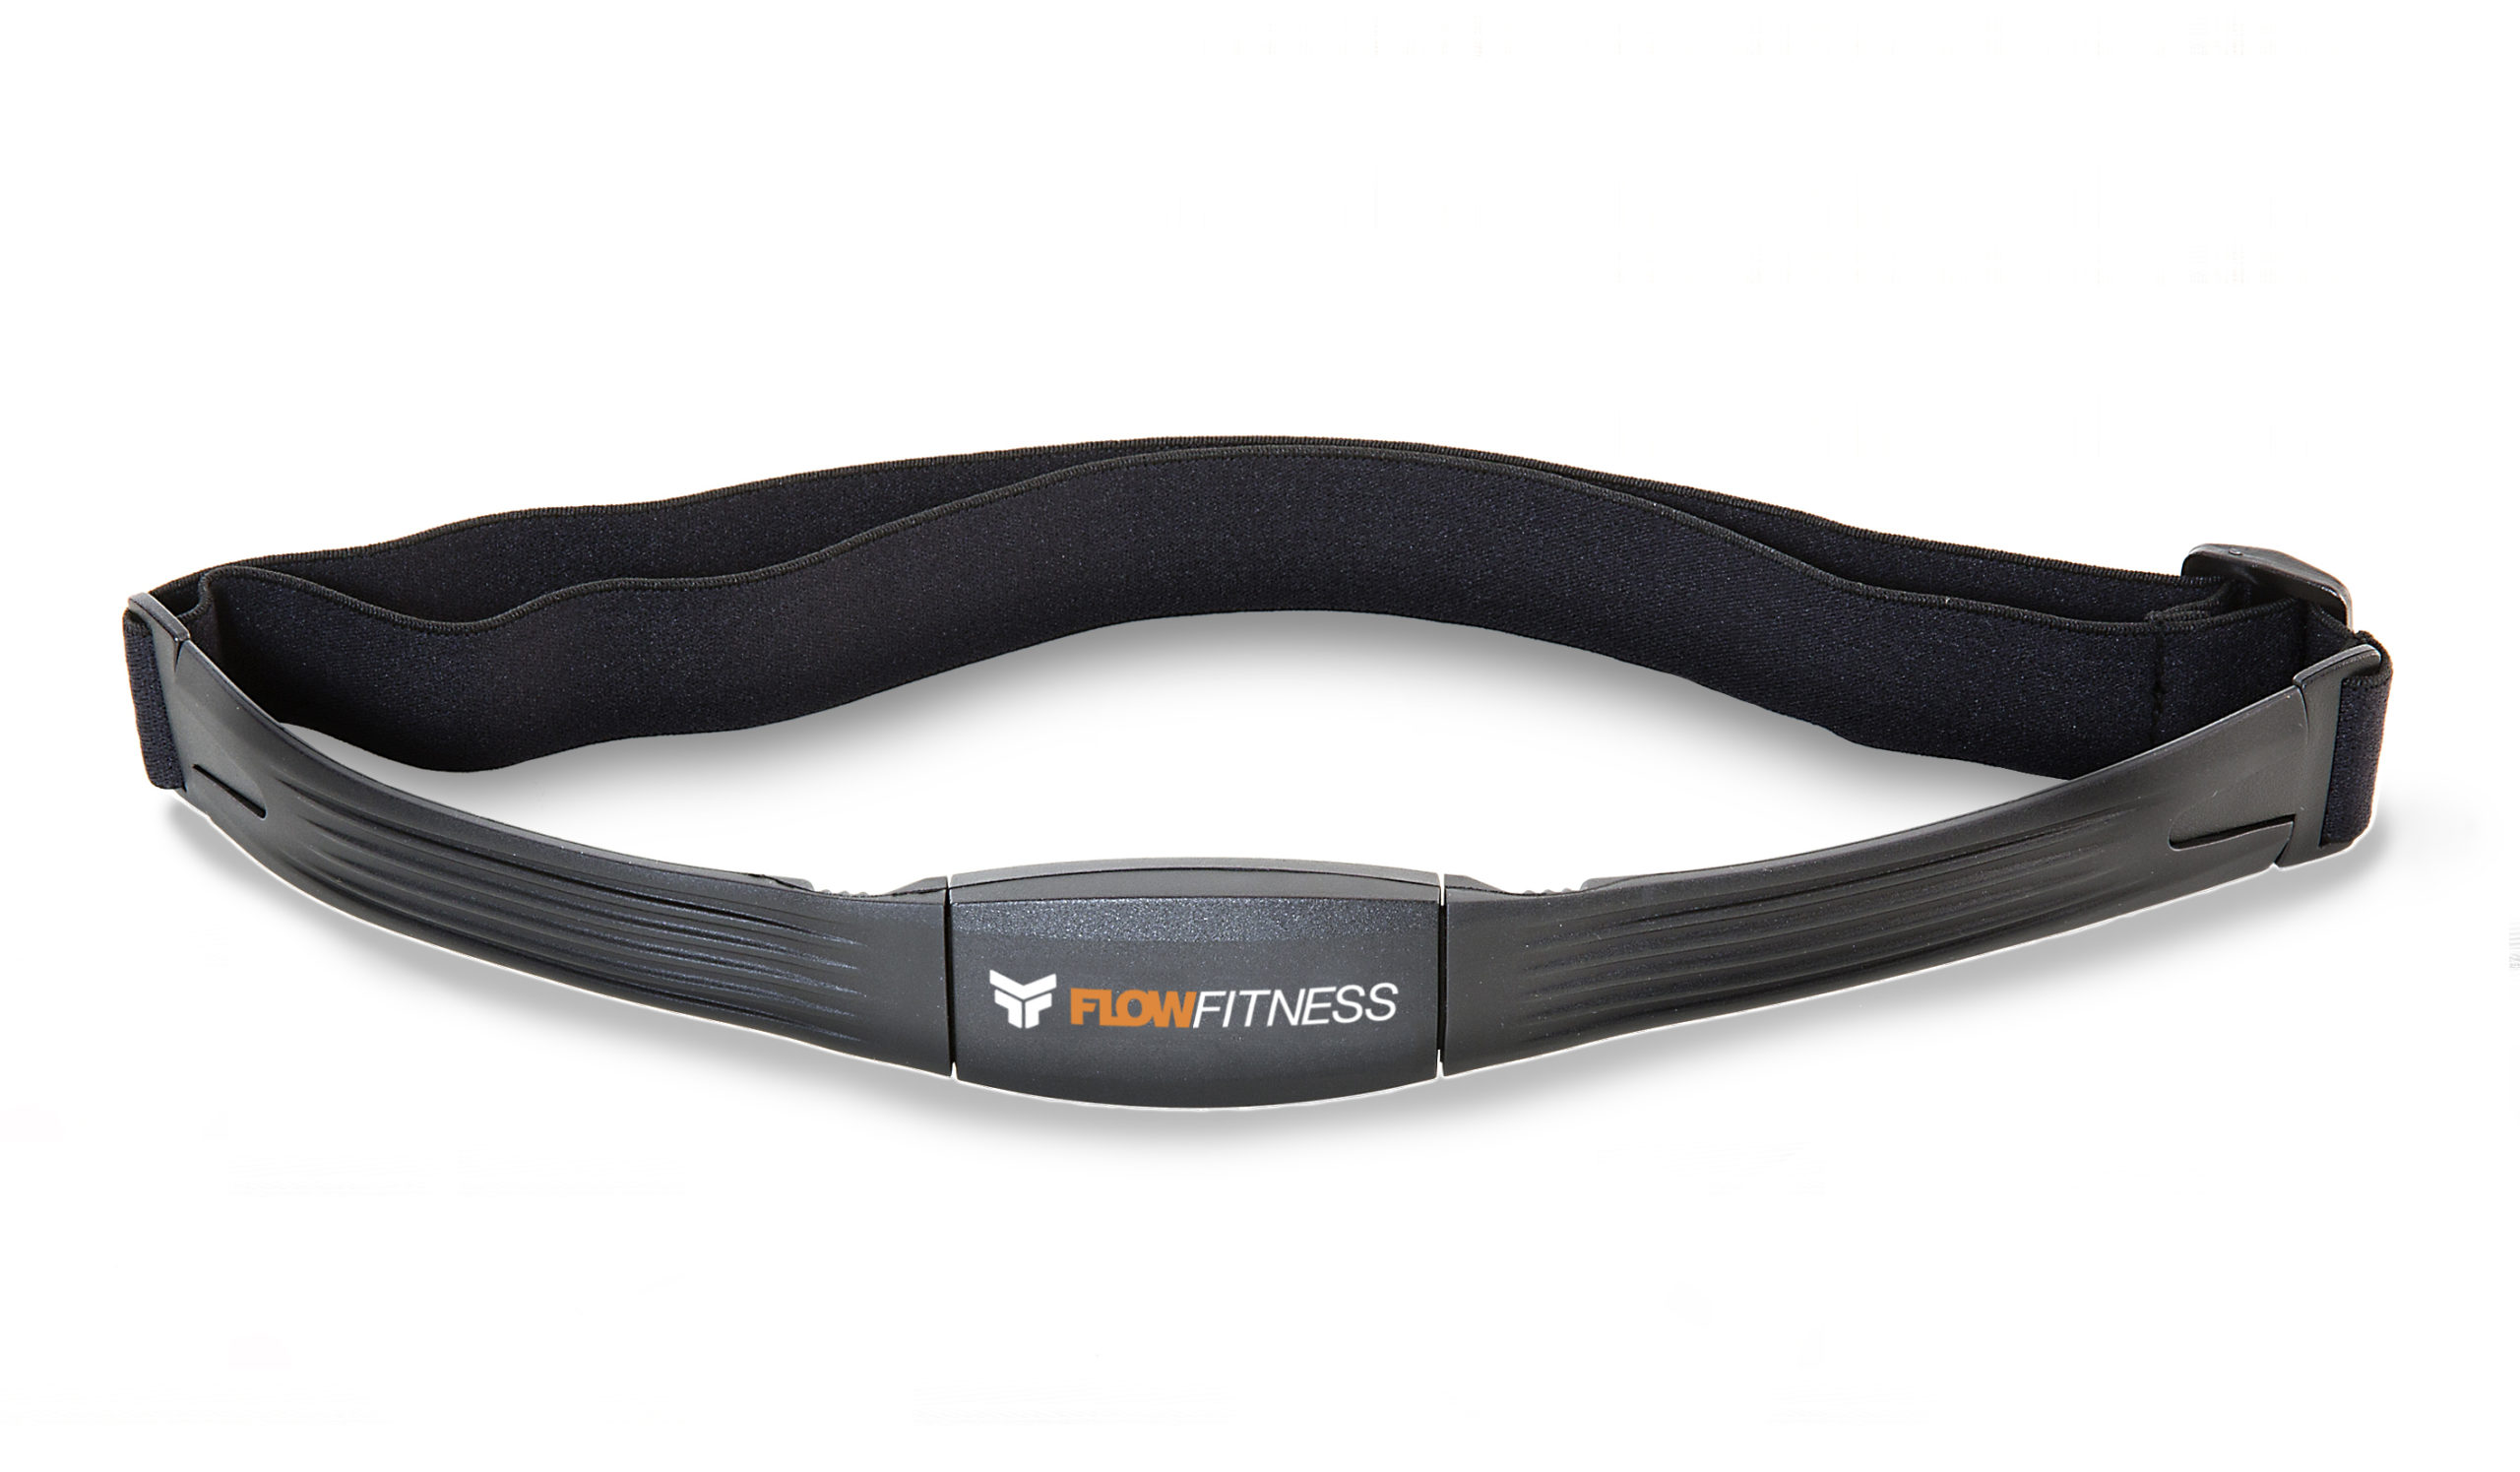 Flow Fitness Tabel Flow Fitness hartslagband 2